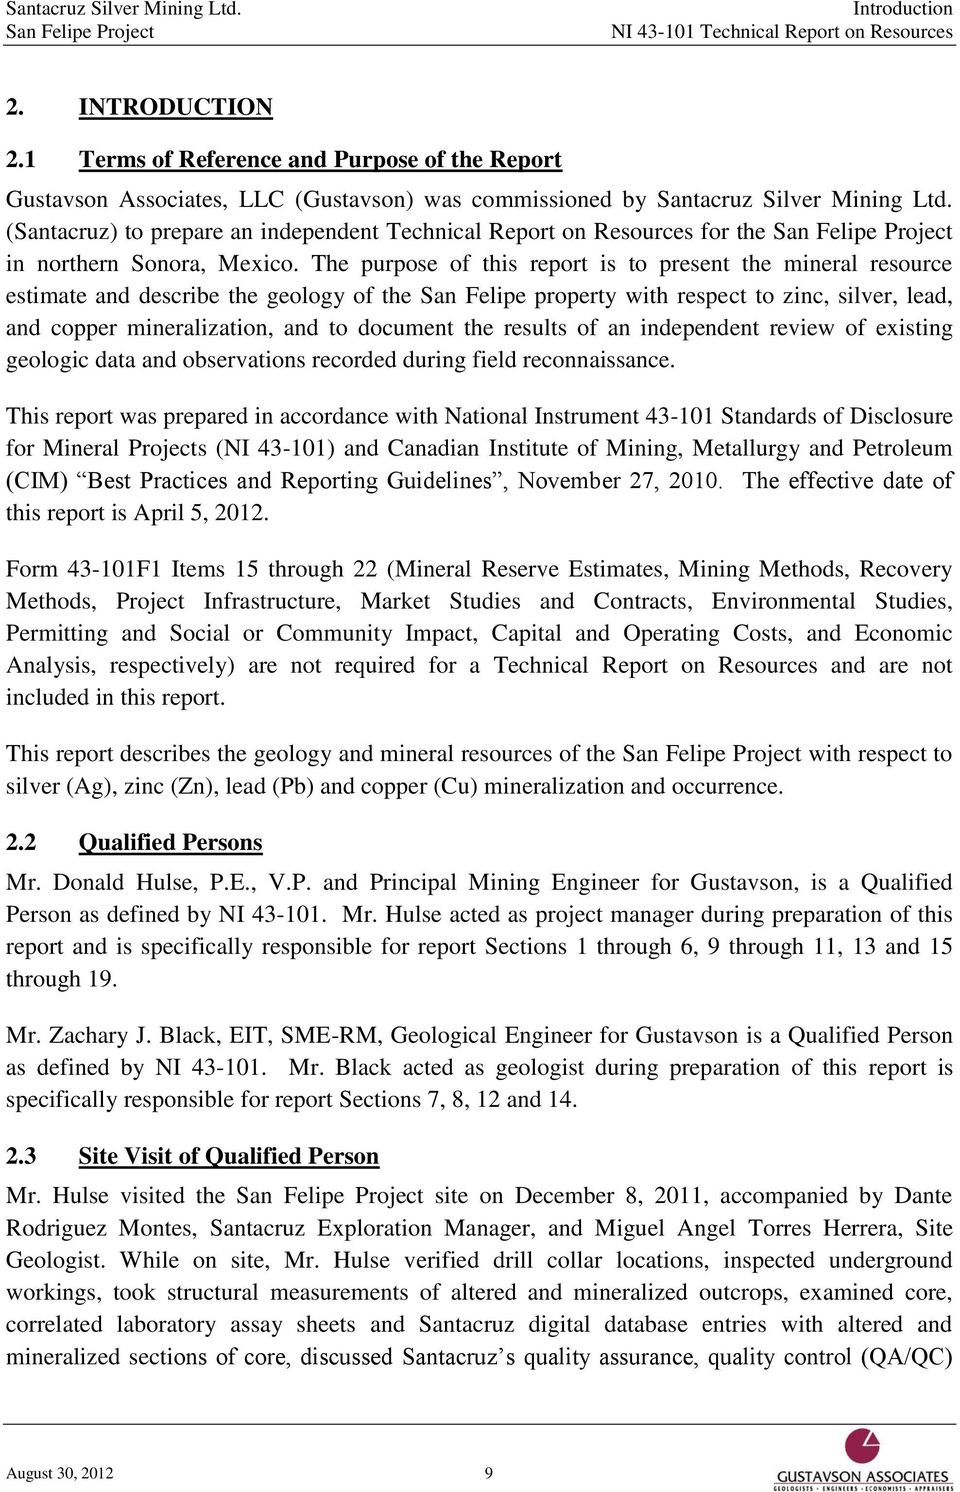 The purpose of this report is to present the mineral resource estimate and describe the geology of the San Felipe property with respect to zinc, silver, lead, and copper mineralization, and to